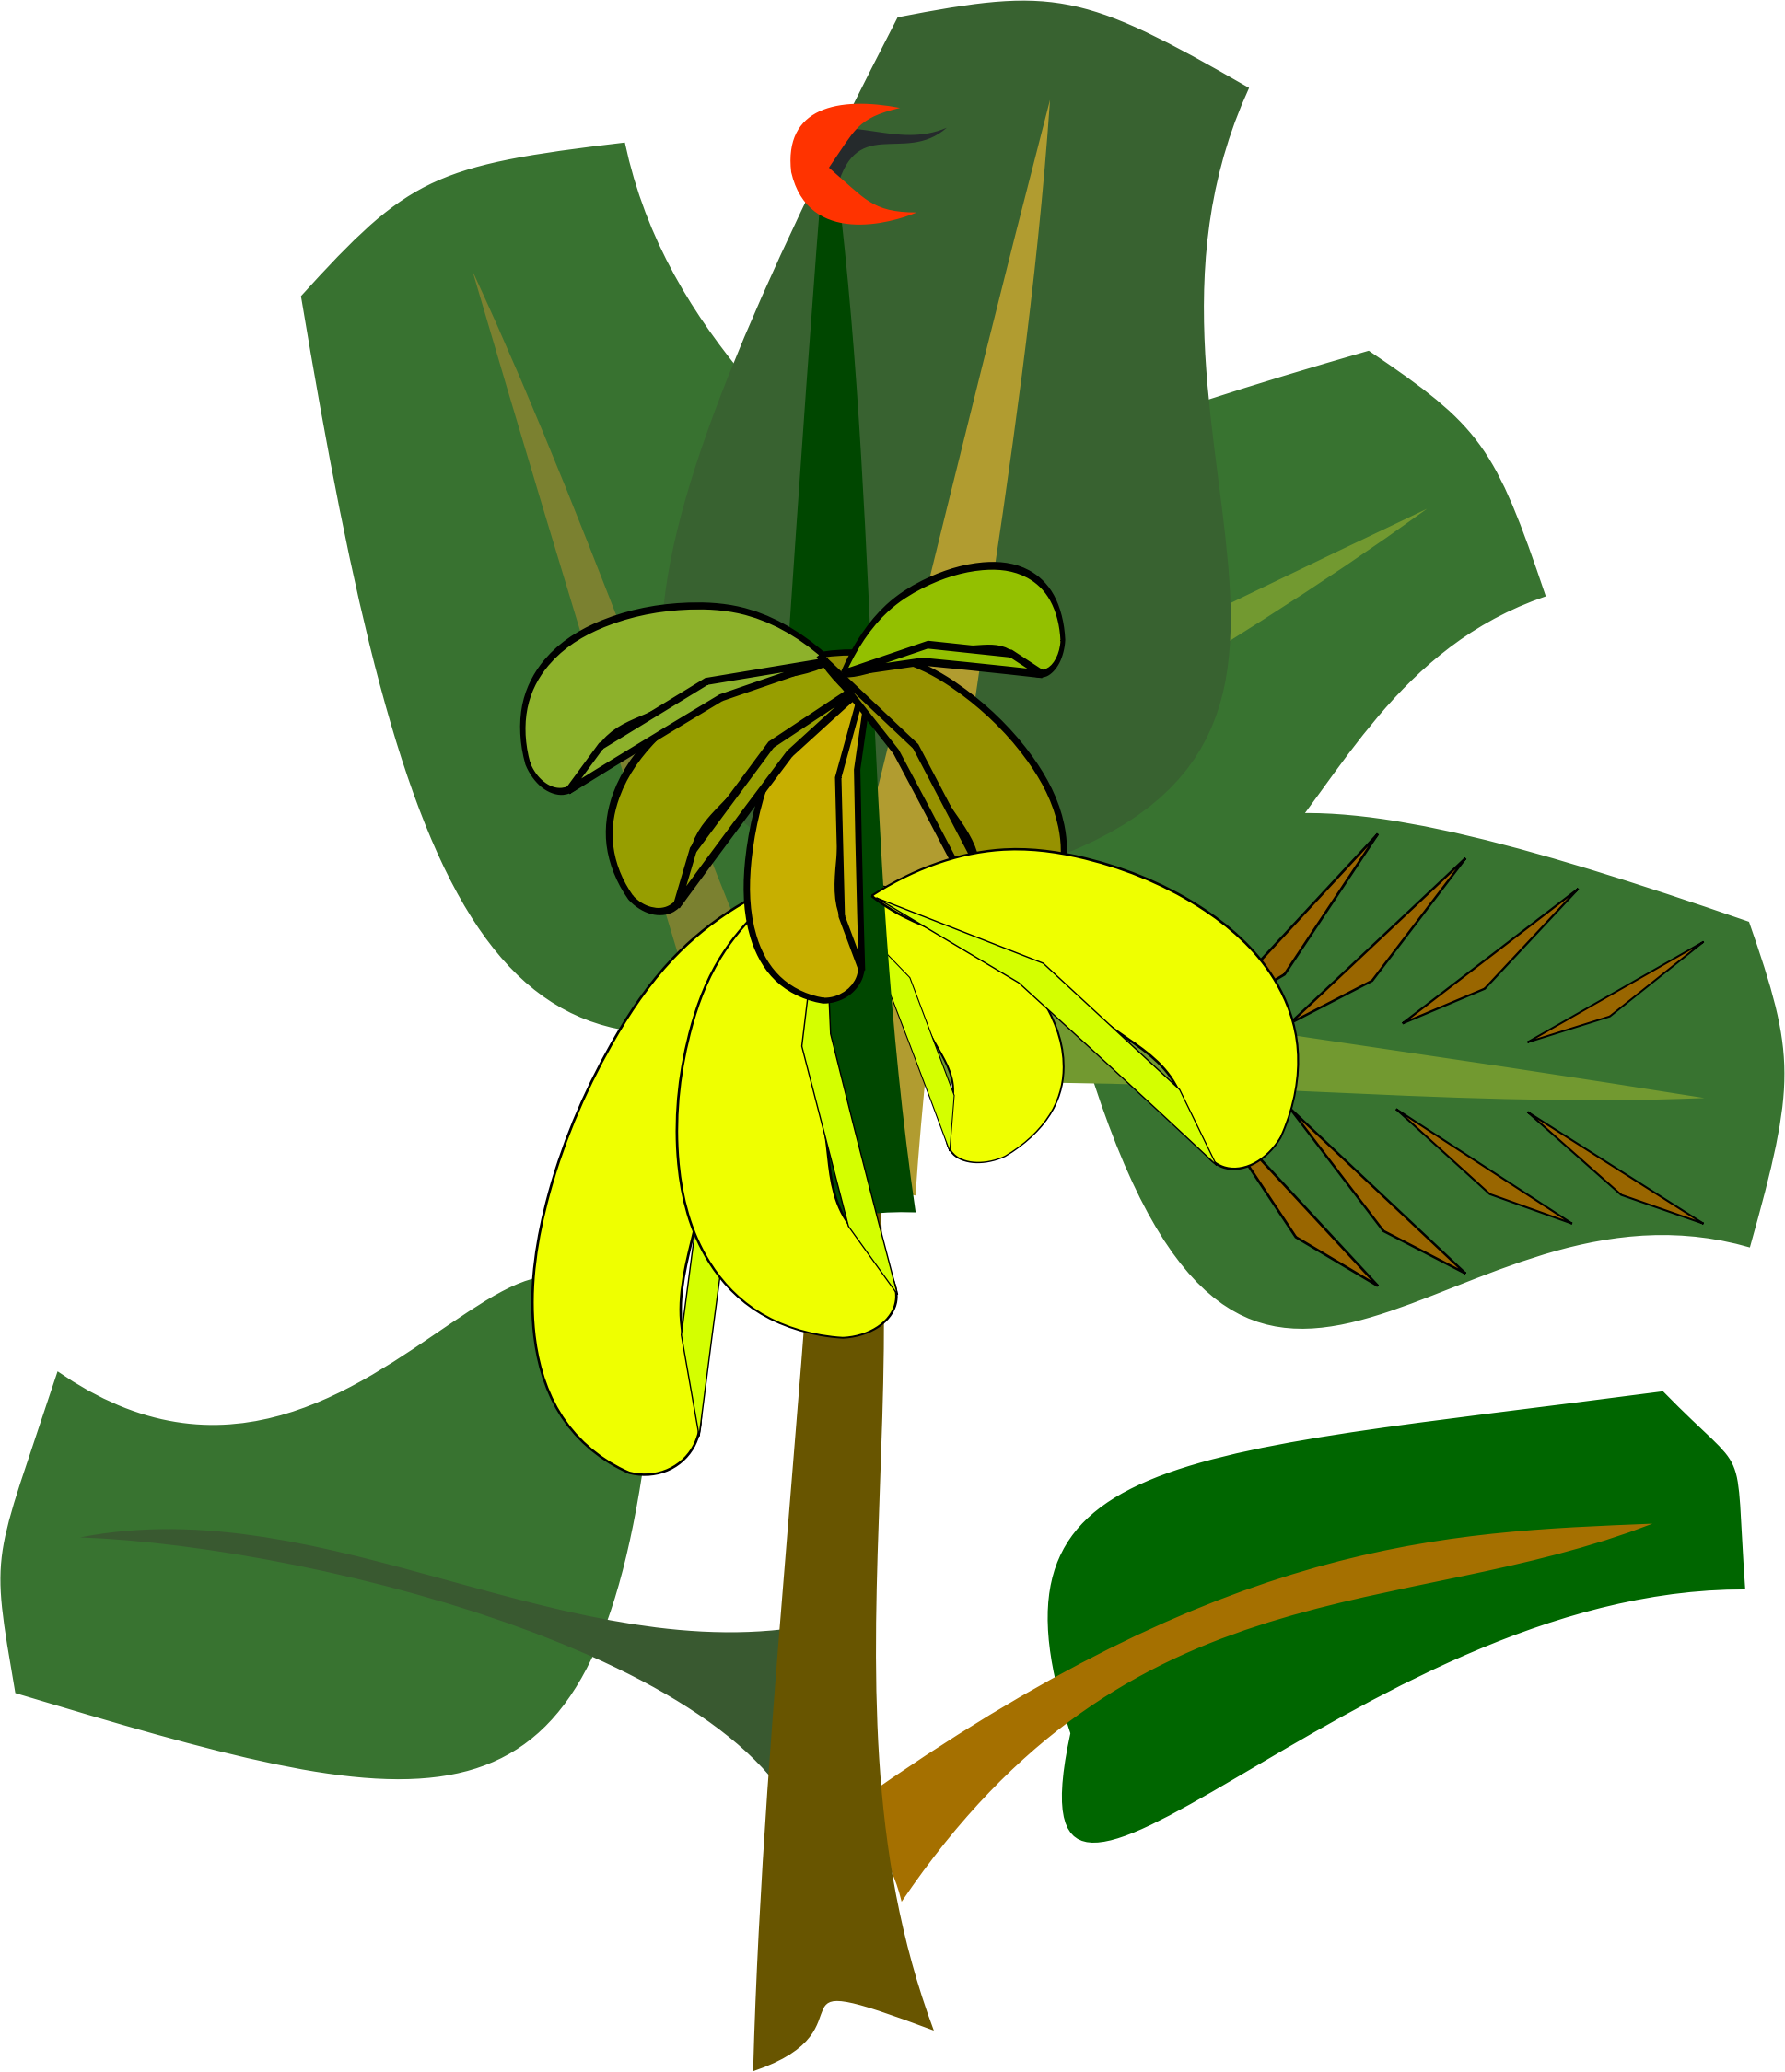 Banana tree clipart png stock Clipart - bananas on the tree png stock